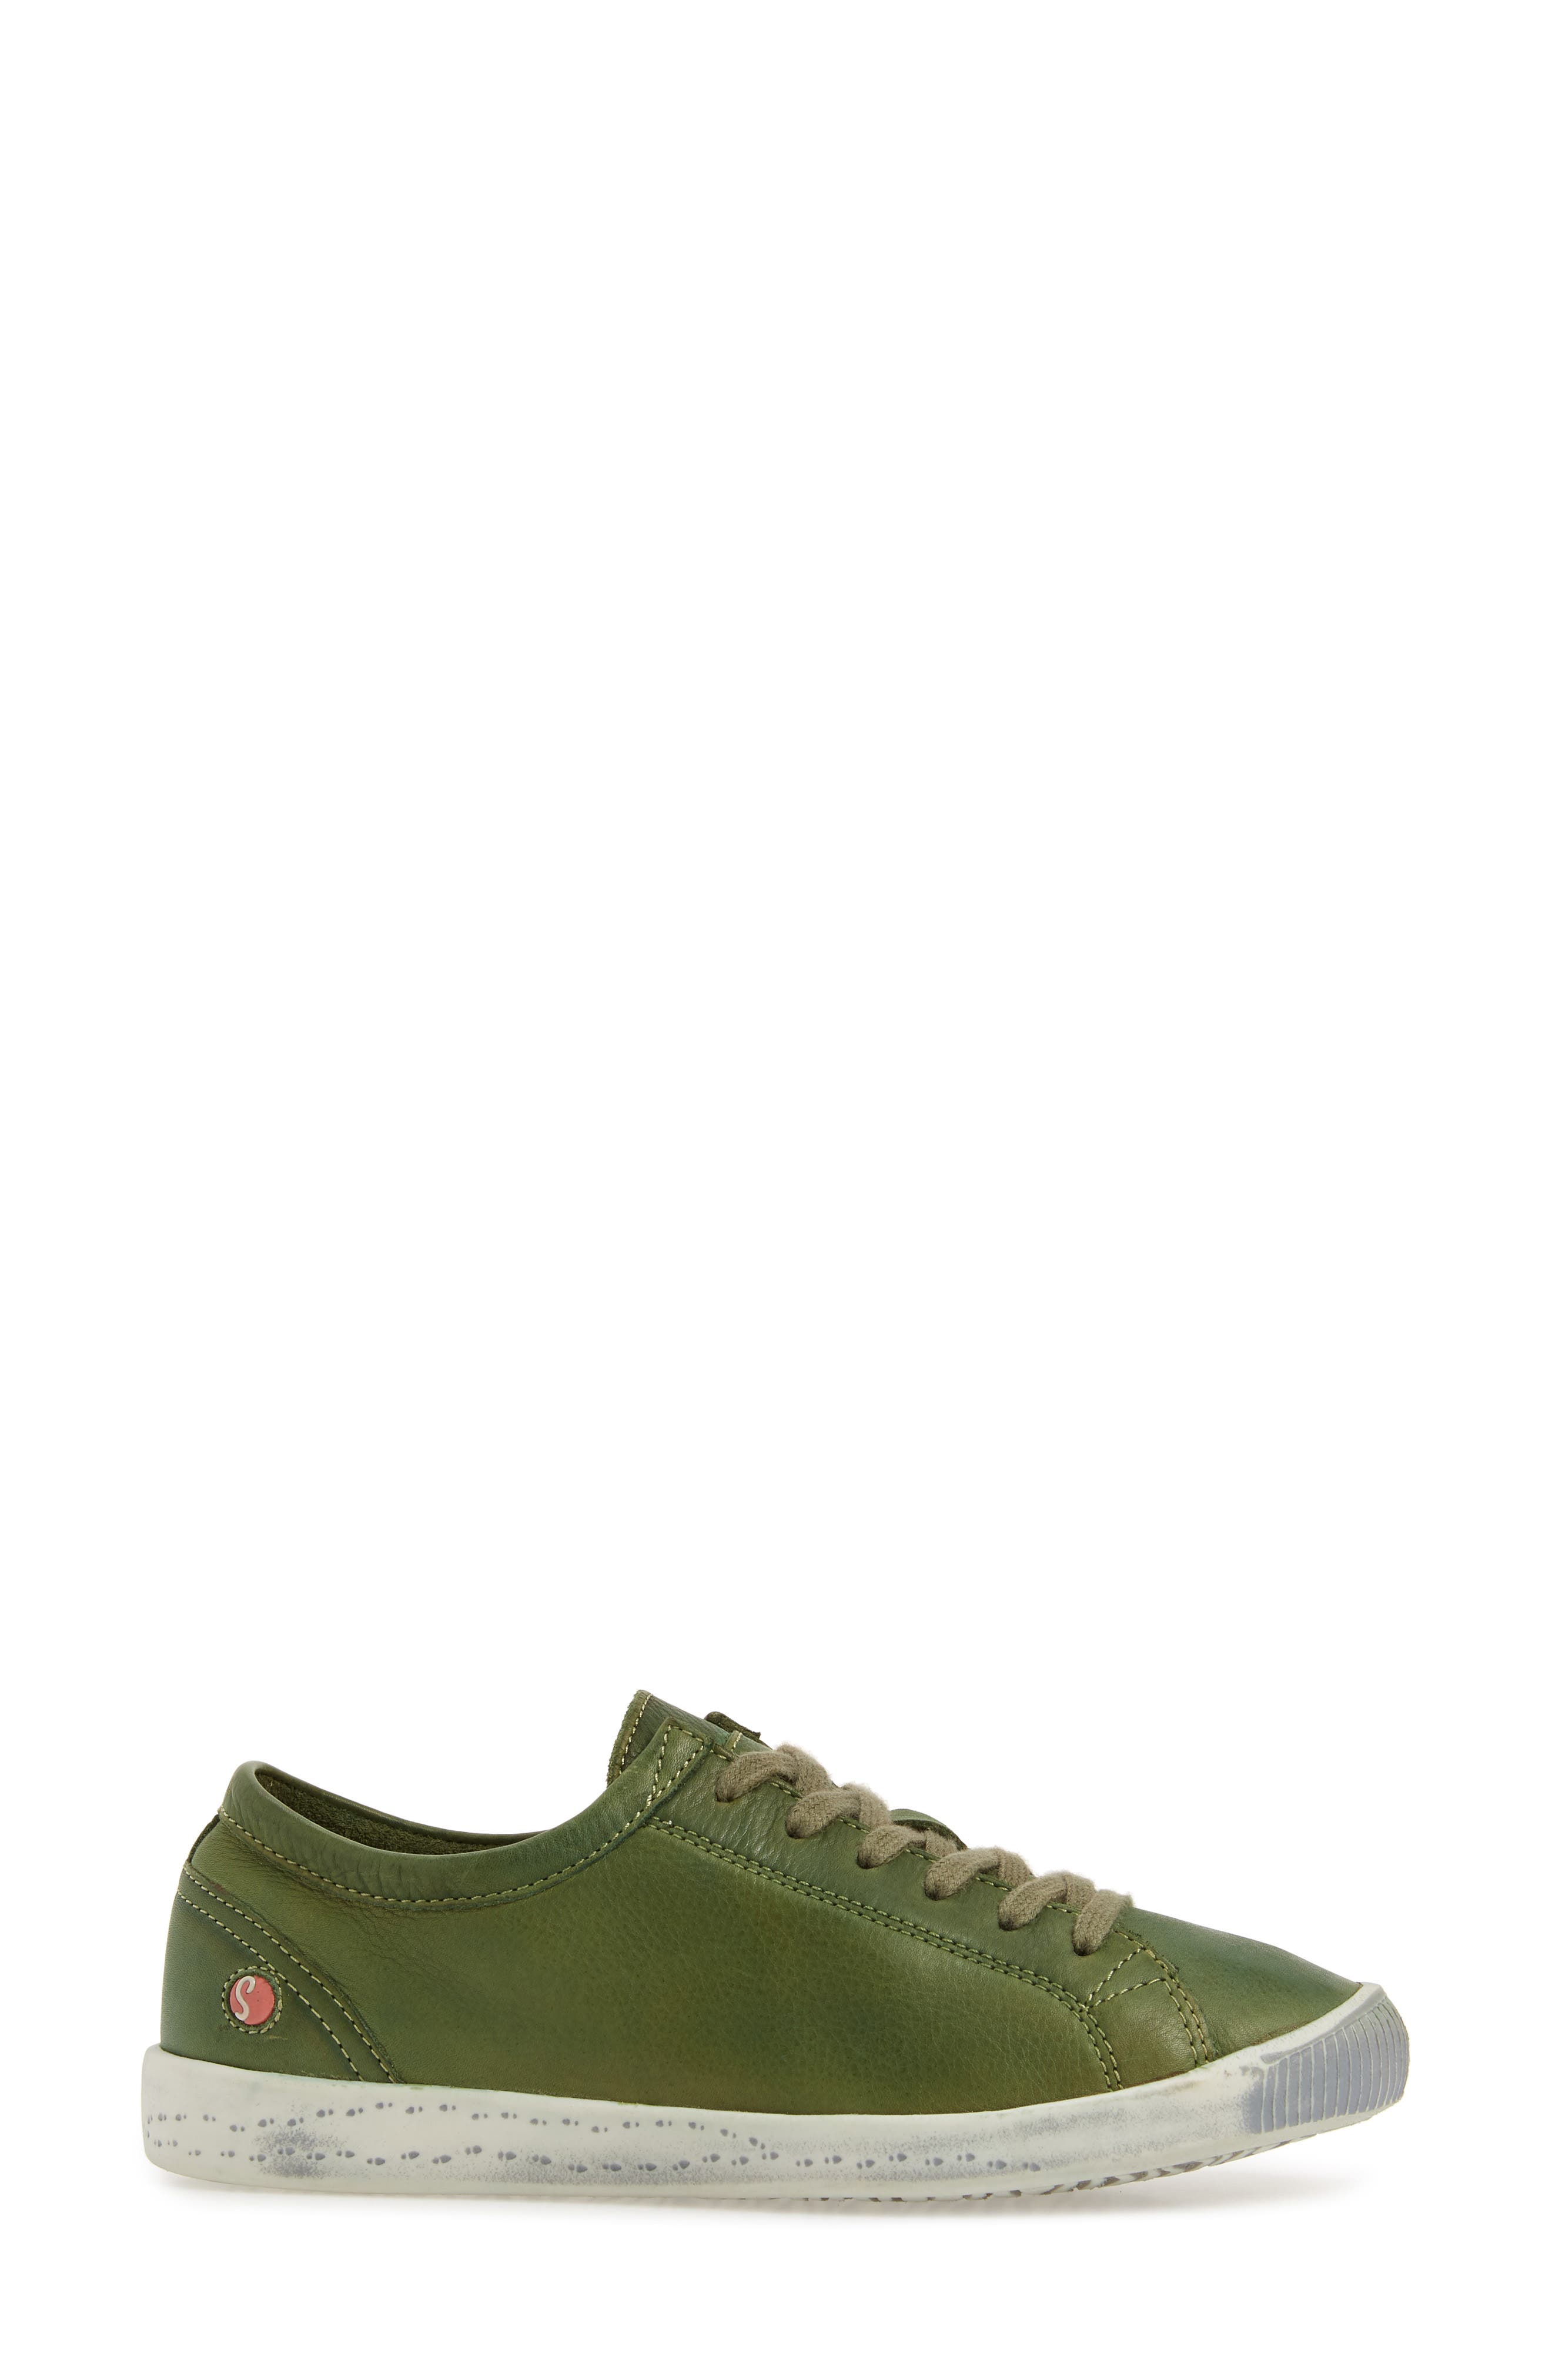 Isla Distressed Sneaker,                             Alternate thumbnail 3, color,                             FOREST GREEN WASHED LEATHER